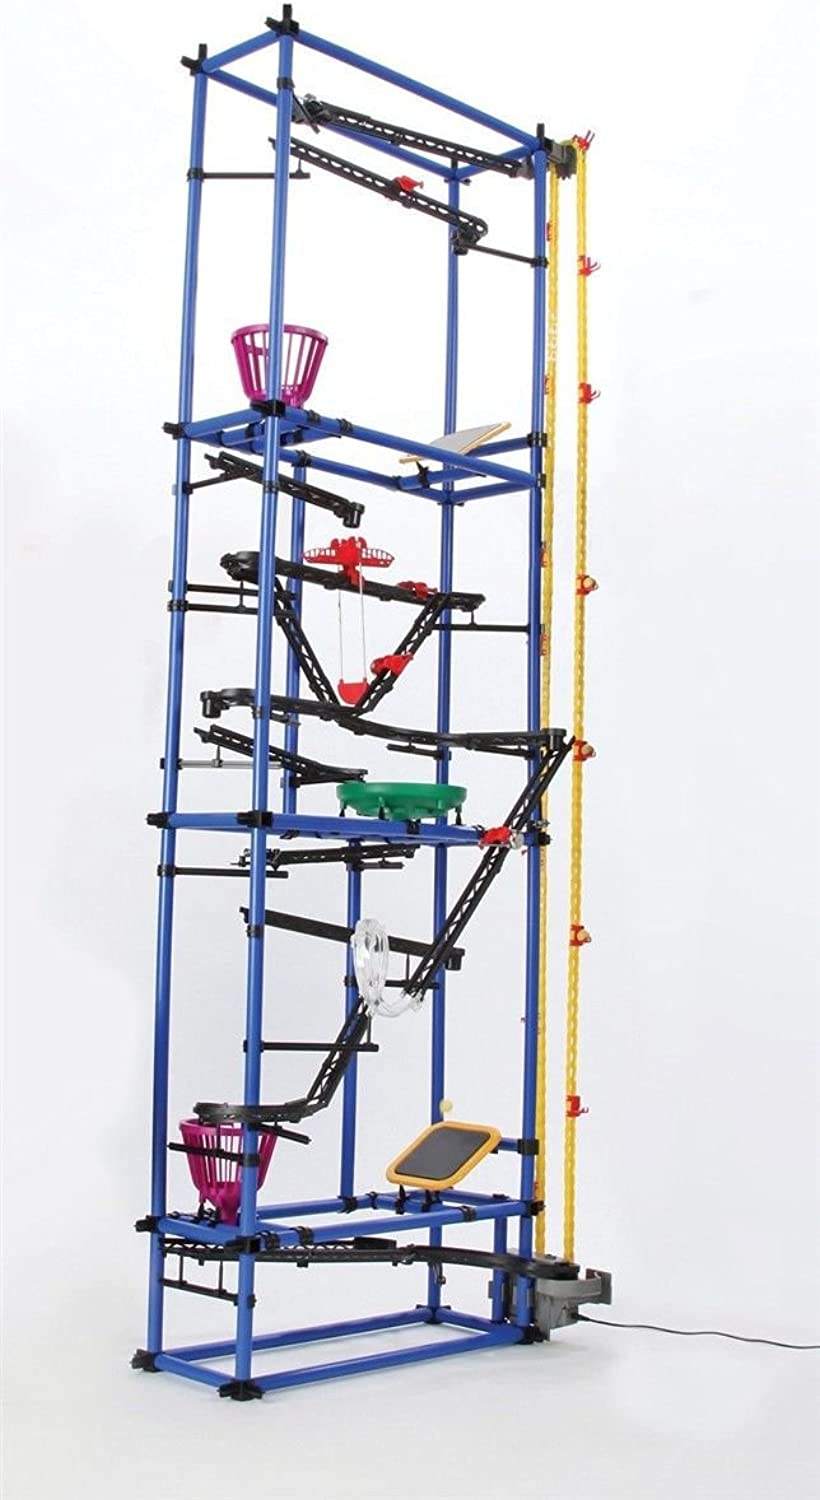 Chaos Tower by American Science & Surplus